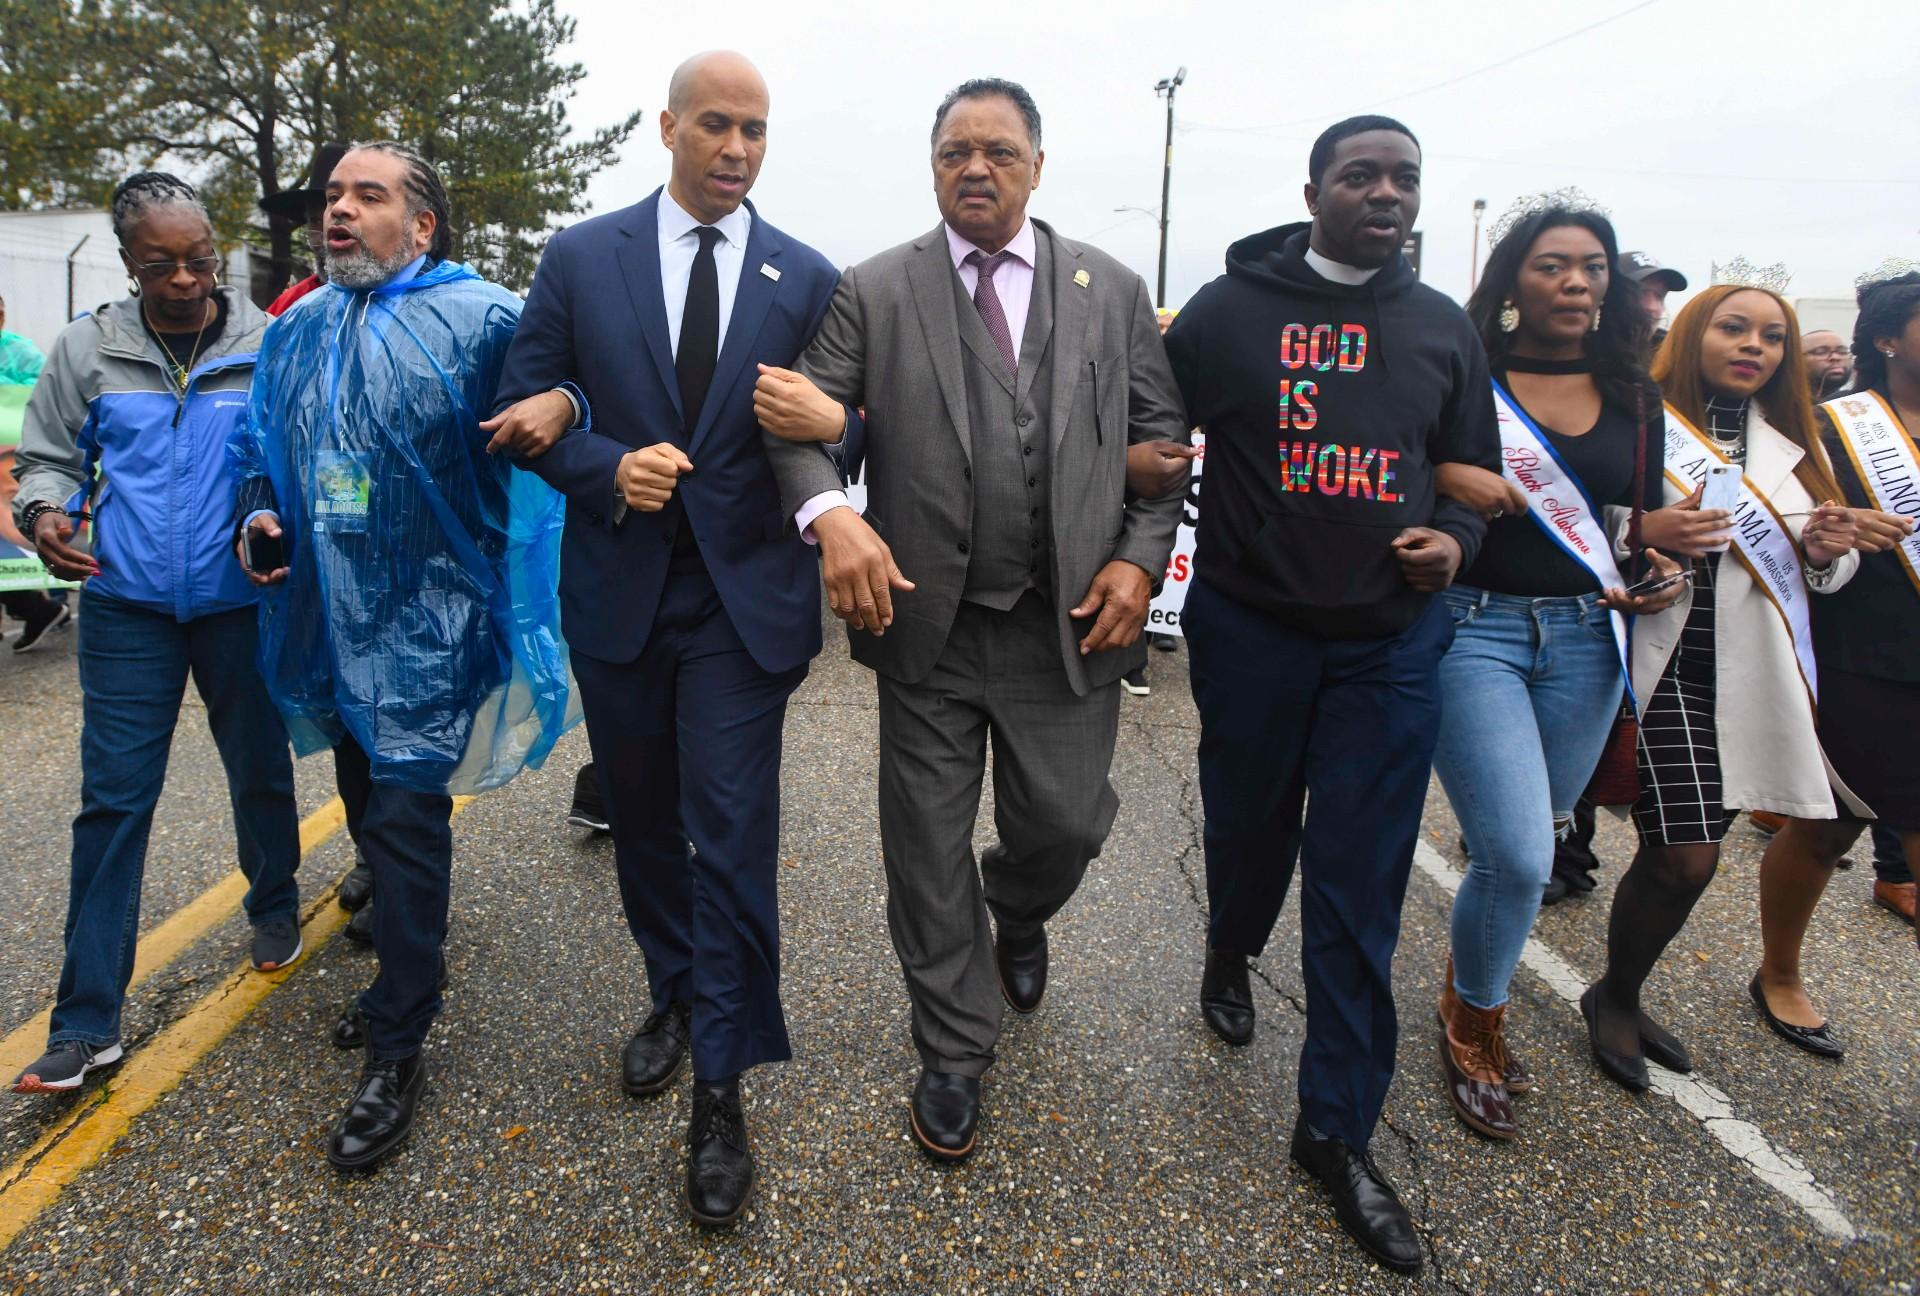 "U.S. Sen. Cory Booker, D-N.J., third from left, and the Rev. Jesse Jackson march to cross the Edmund Pettus Bridge Sunday, March 3, 2019, during the Bloody Sunday commemoration in Selma, Ala. The infamous ""Bloody Sunday"" on March 7, 1965, galvanized support for the passage of the Voting Rights Act that year. (AP Photo / Julie Bennett)"